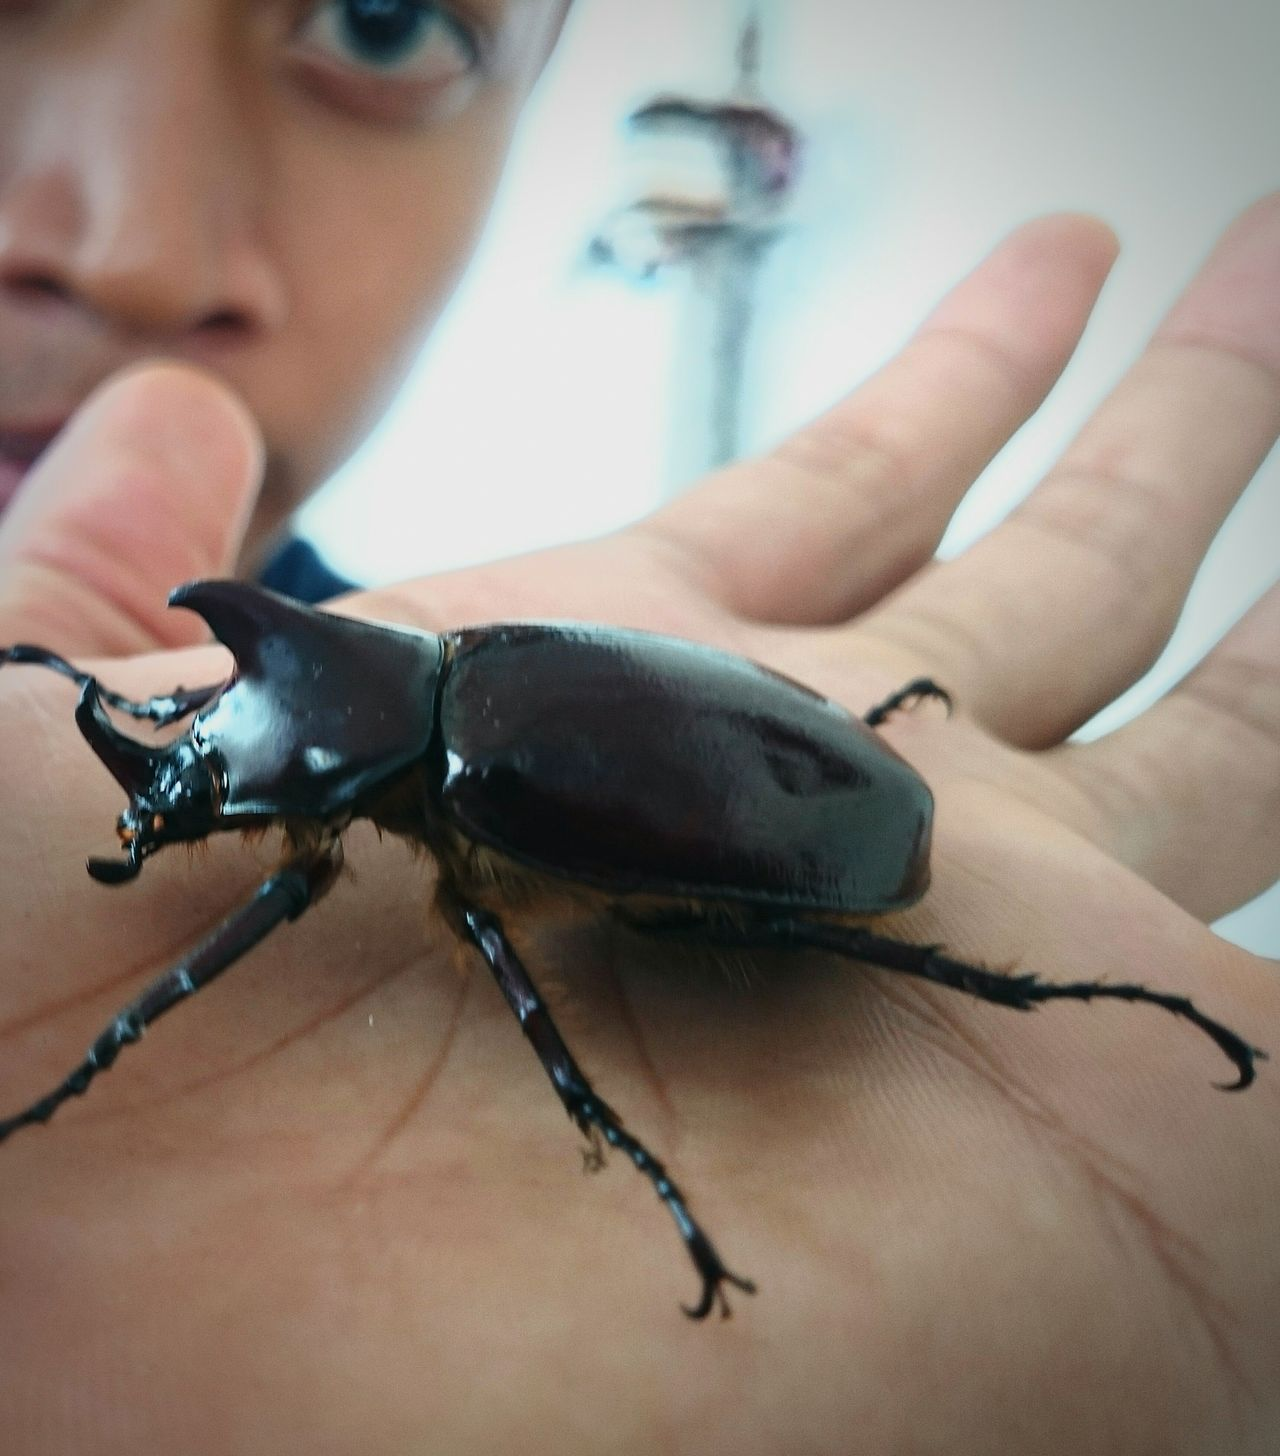 One Animal Animal Wildlife Insect Human Hand Close-up Day Animals In The Wild Scenics